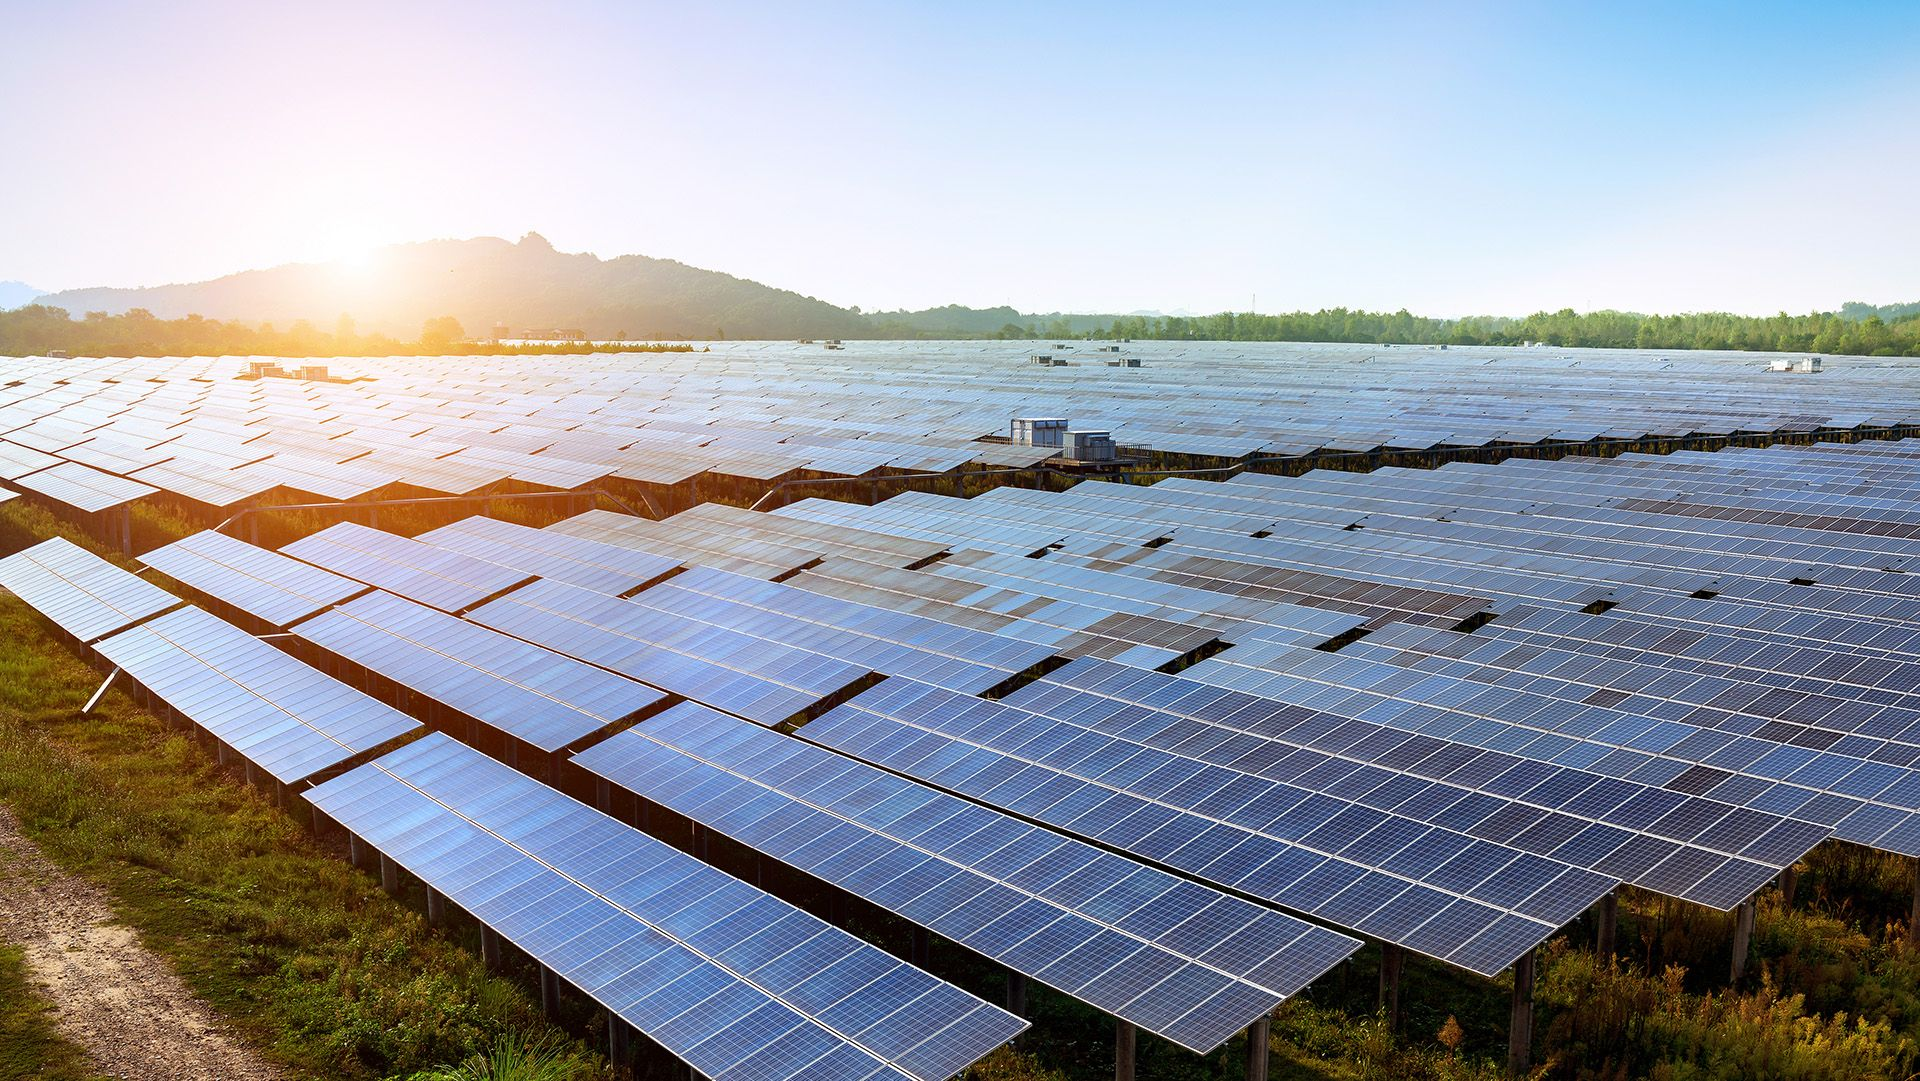 8 Ways Blockchain Based Applications Can Boost The Corporate Renewables Market Energy Web Foundation Solar Energy Solutions Energy Sector Solar Panels